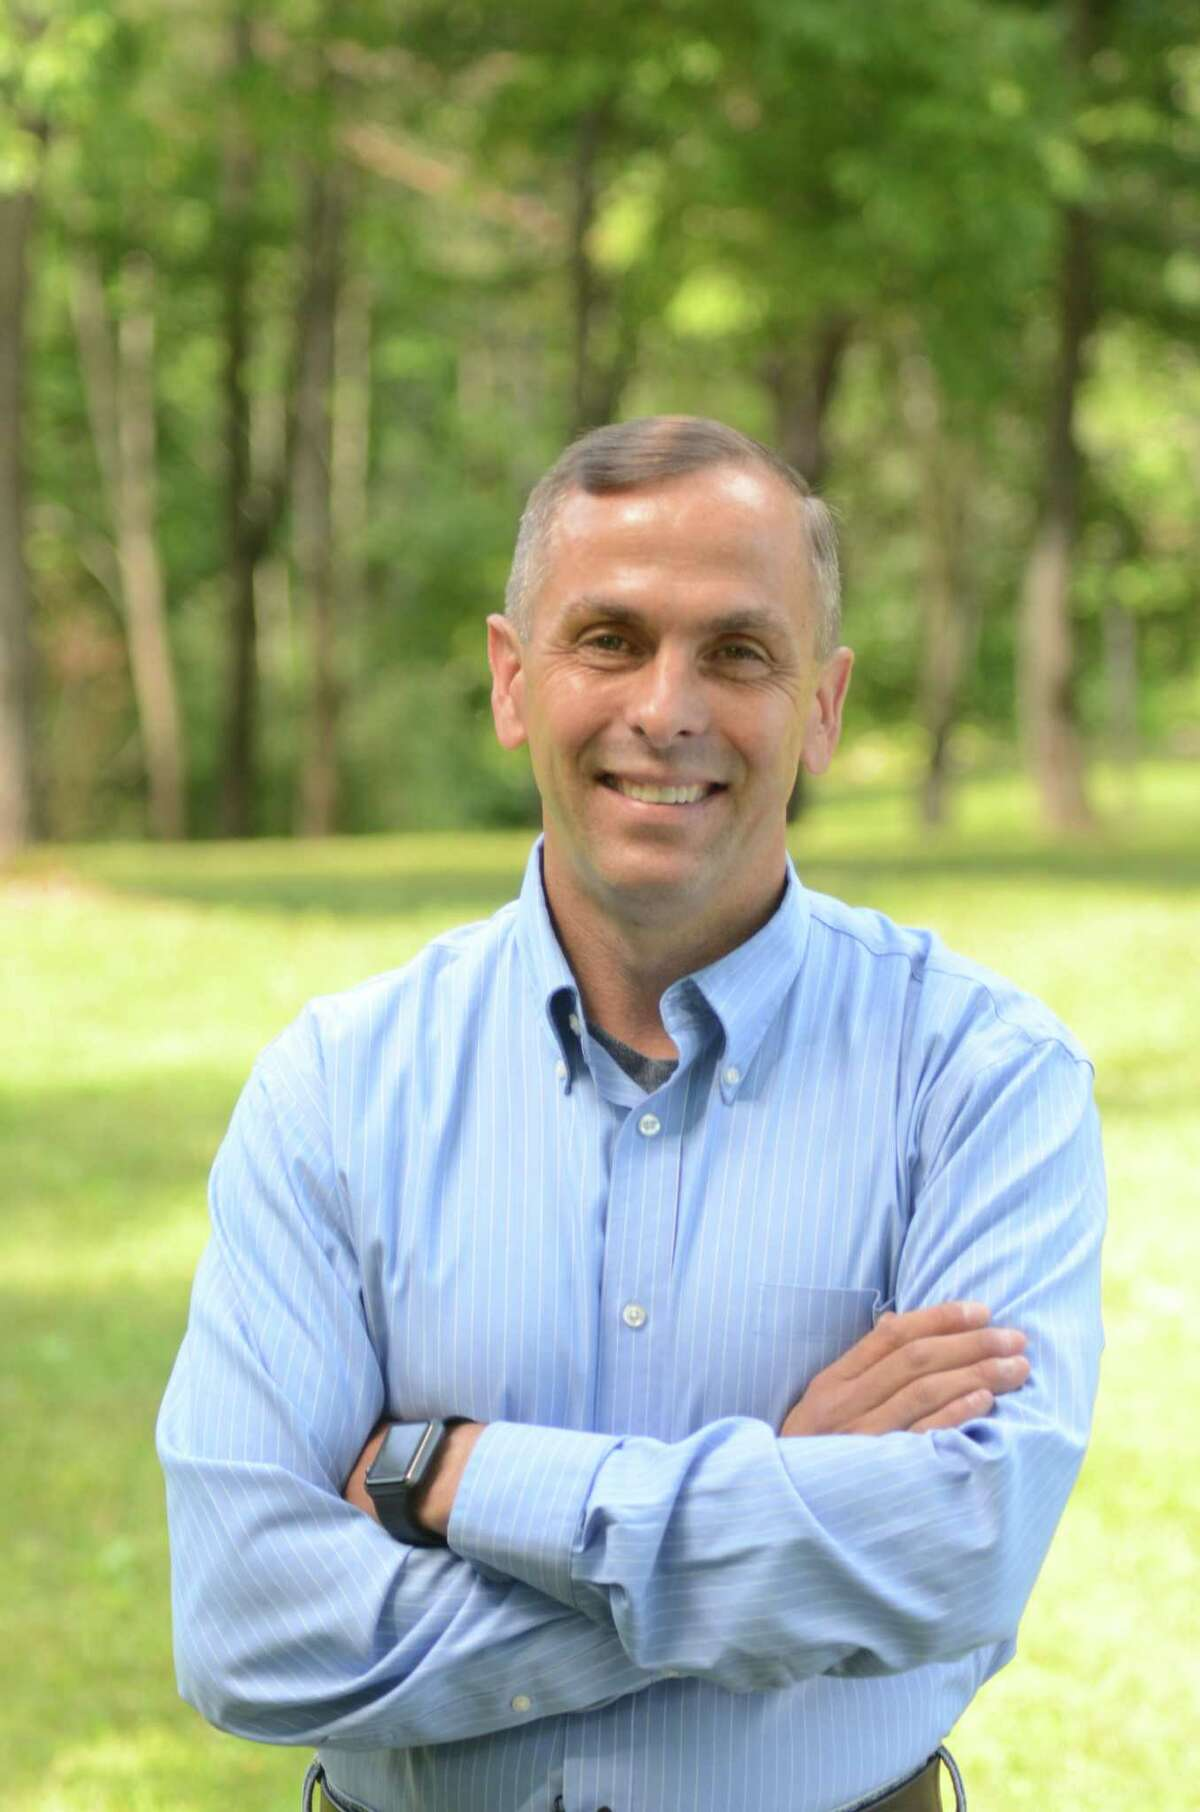 Republican Robert Smullen is running to fill the 118th district seat in the New York state Assembly in the Nov. 2018 election. (Provided)